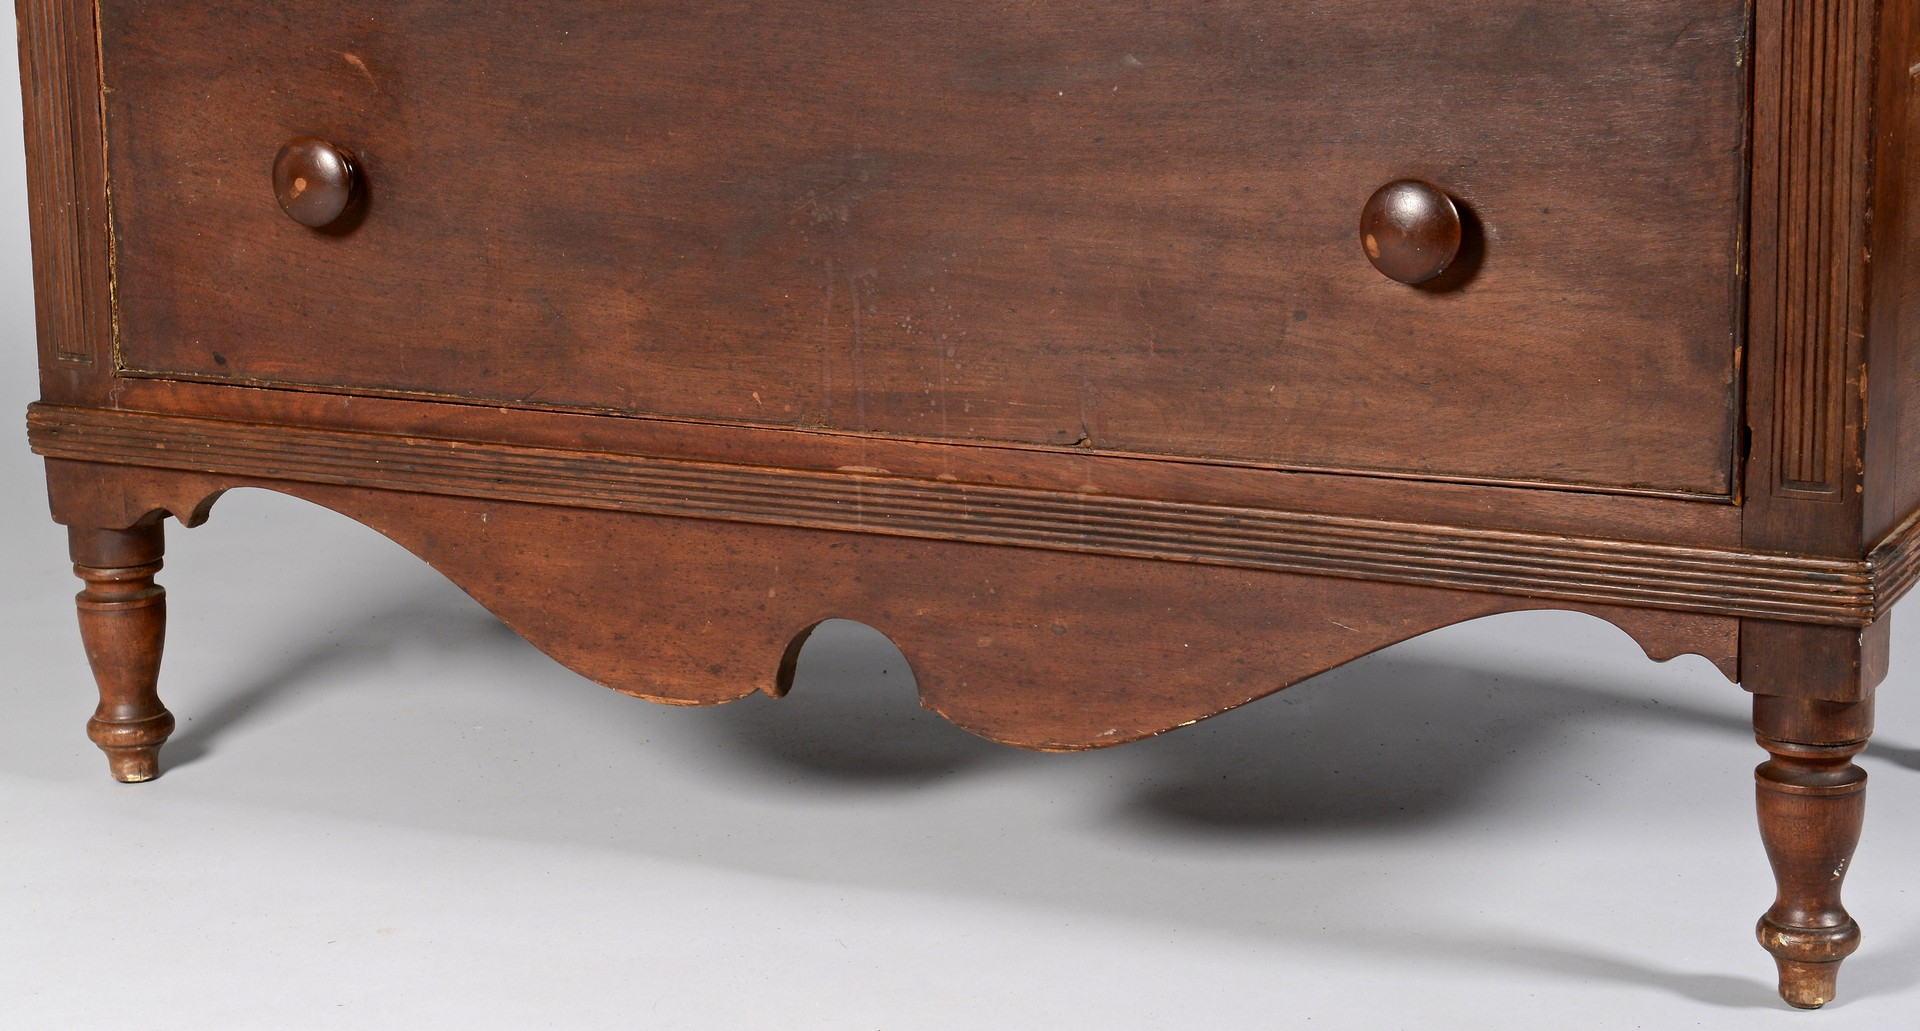 Lot 106: Kentucky walnut chest of drawers, reeded stiles